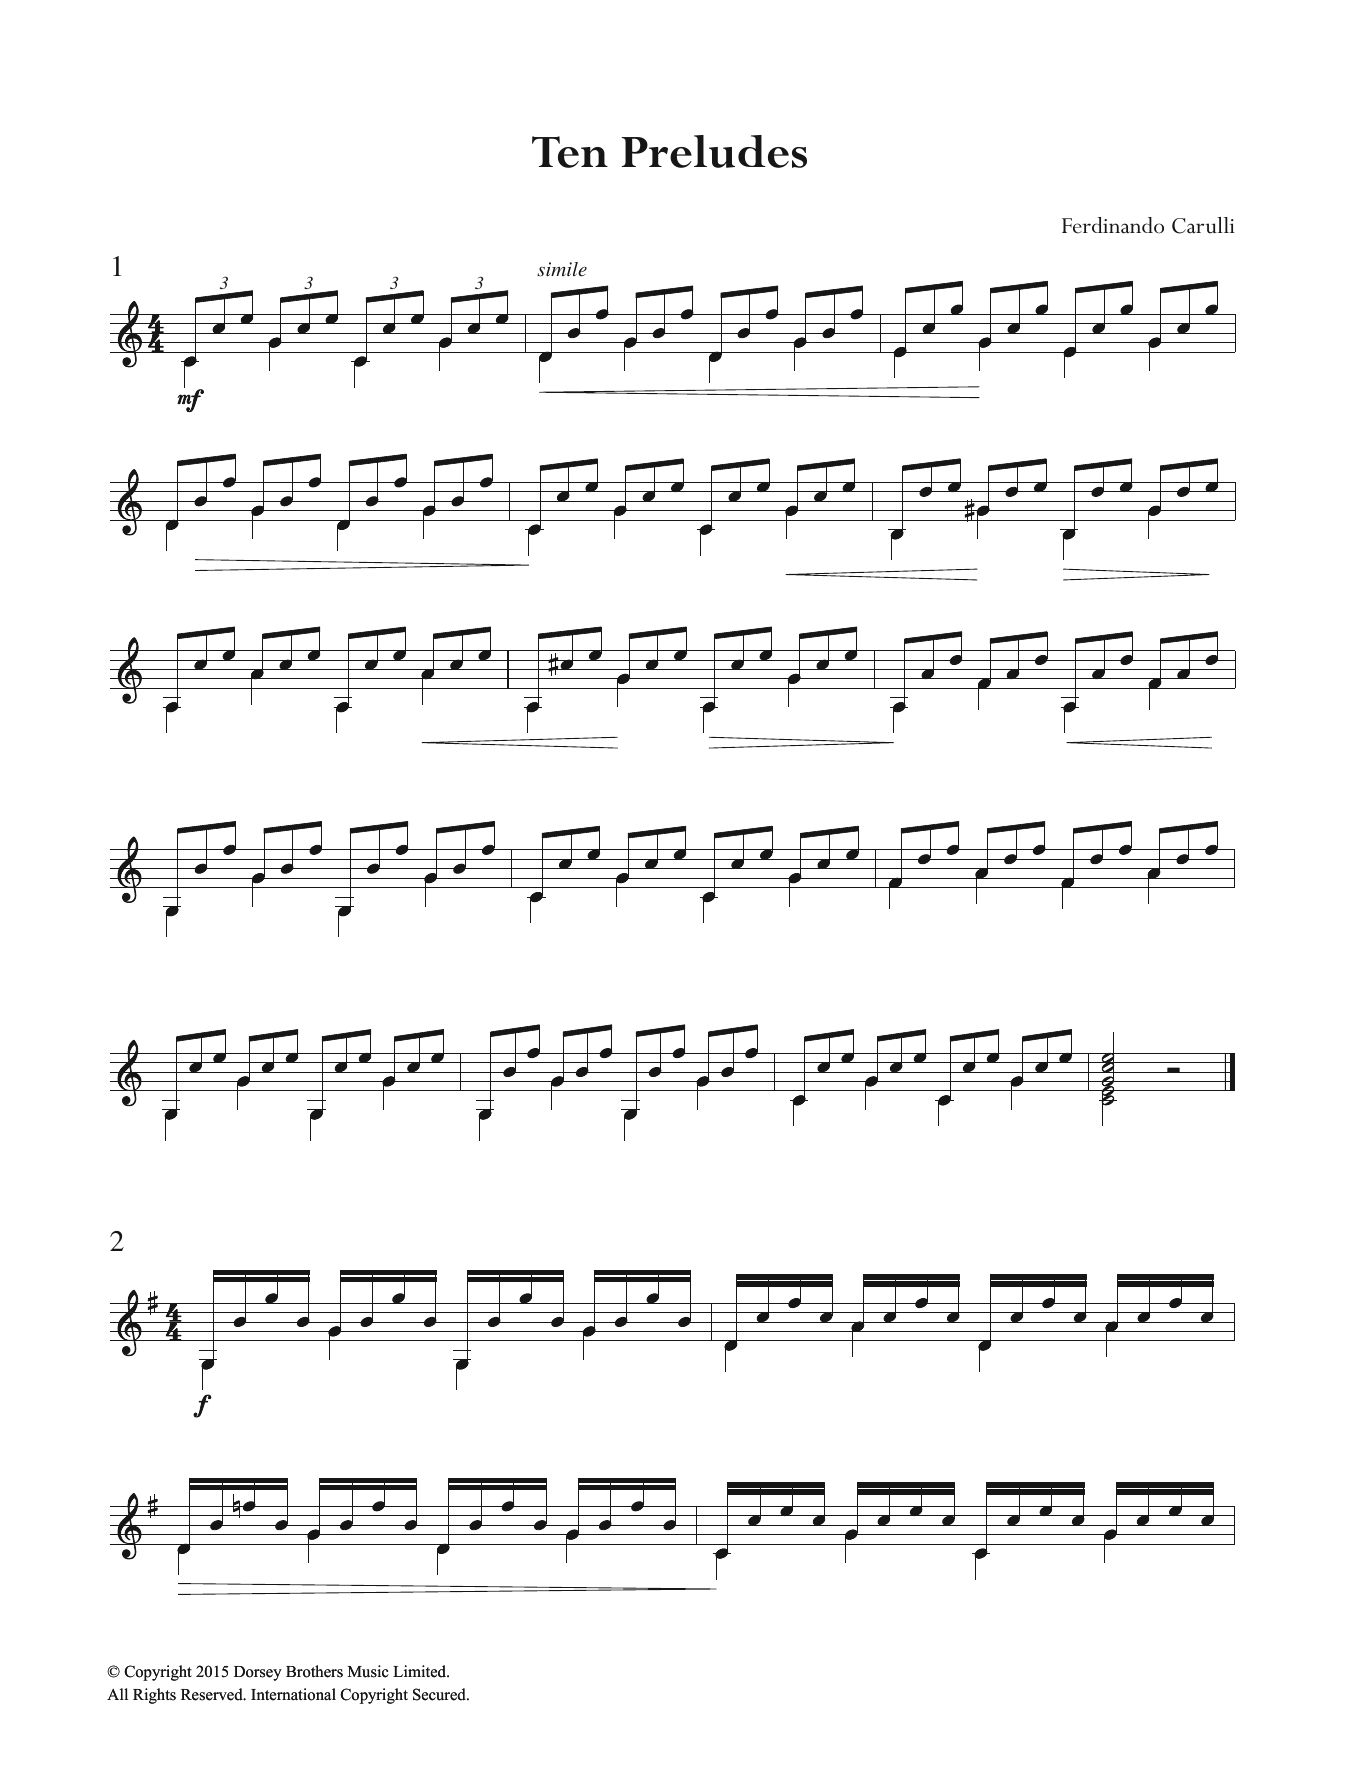 Ten Preludes Sheet Music